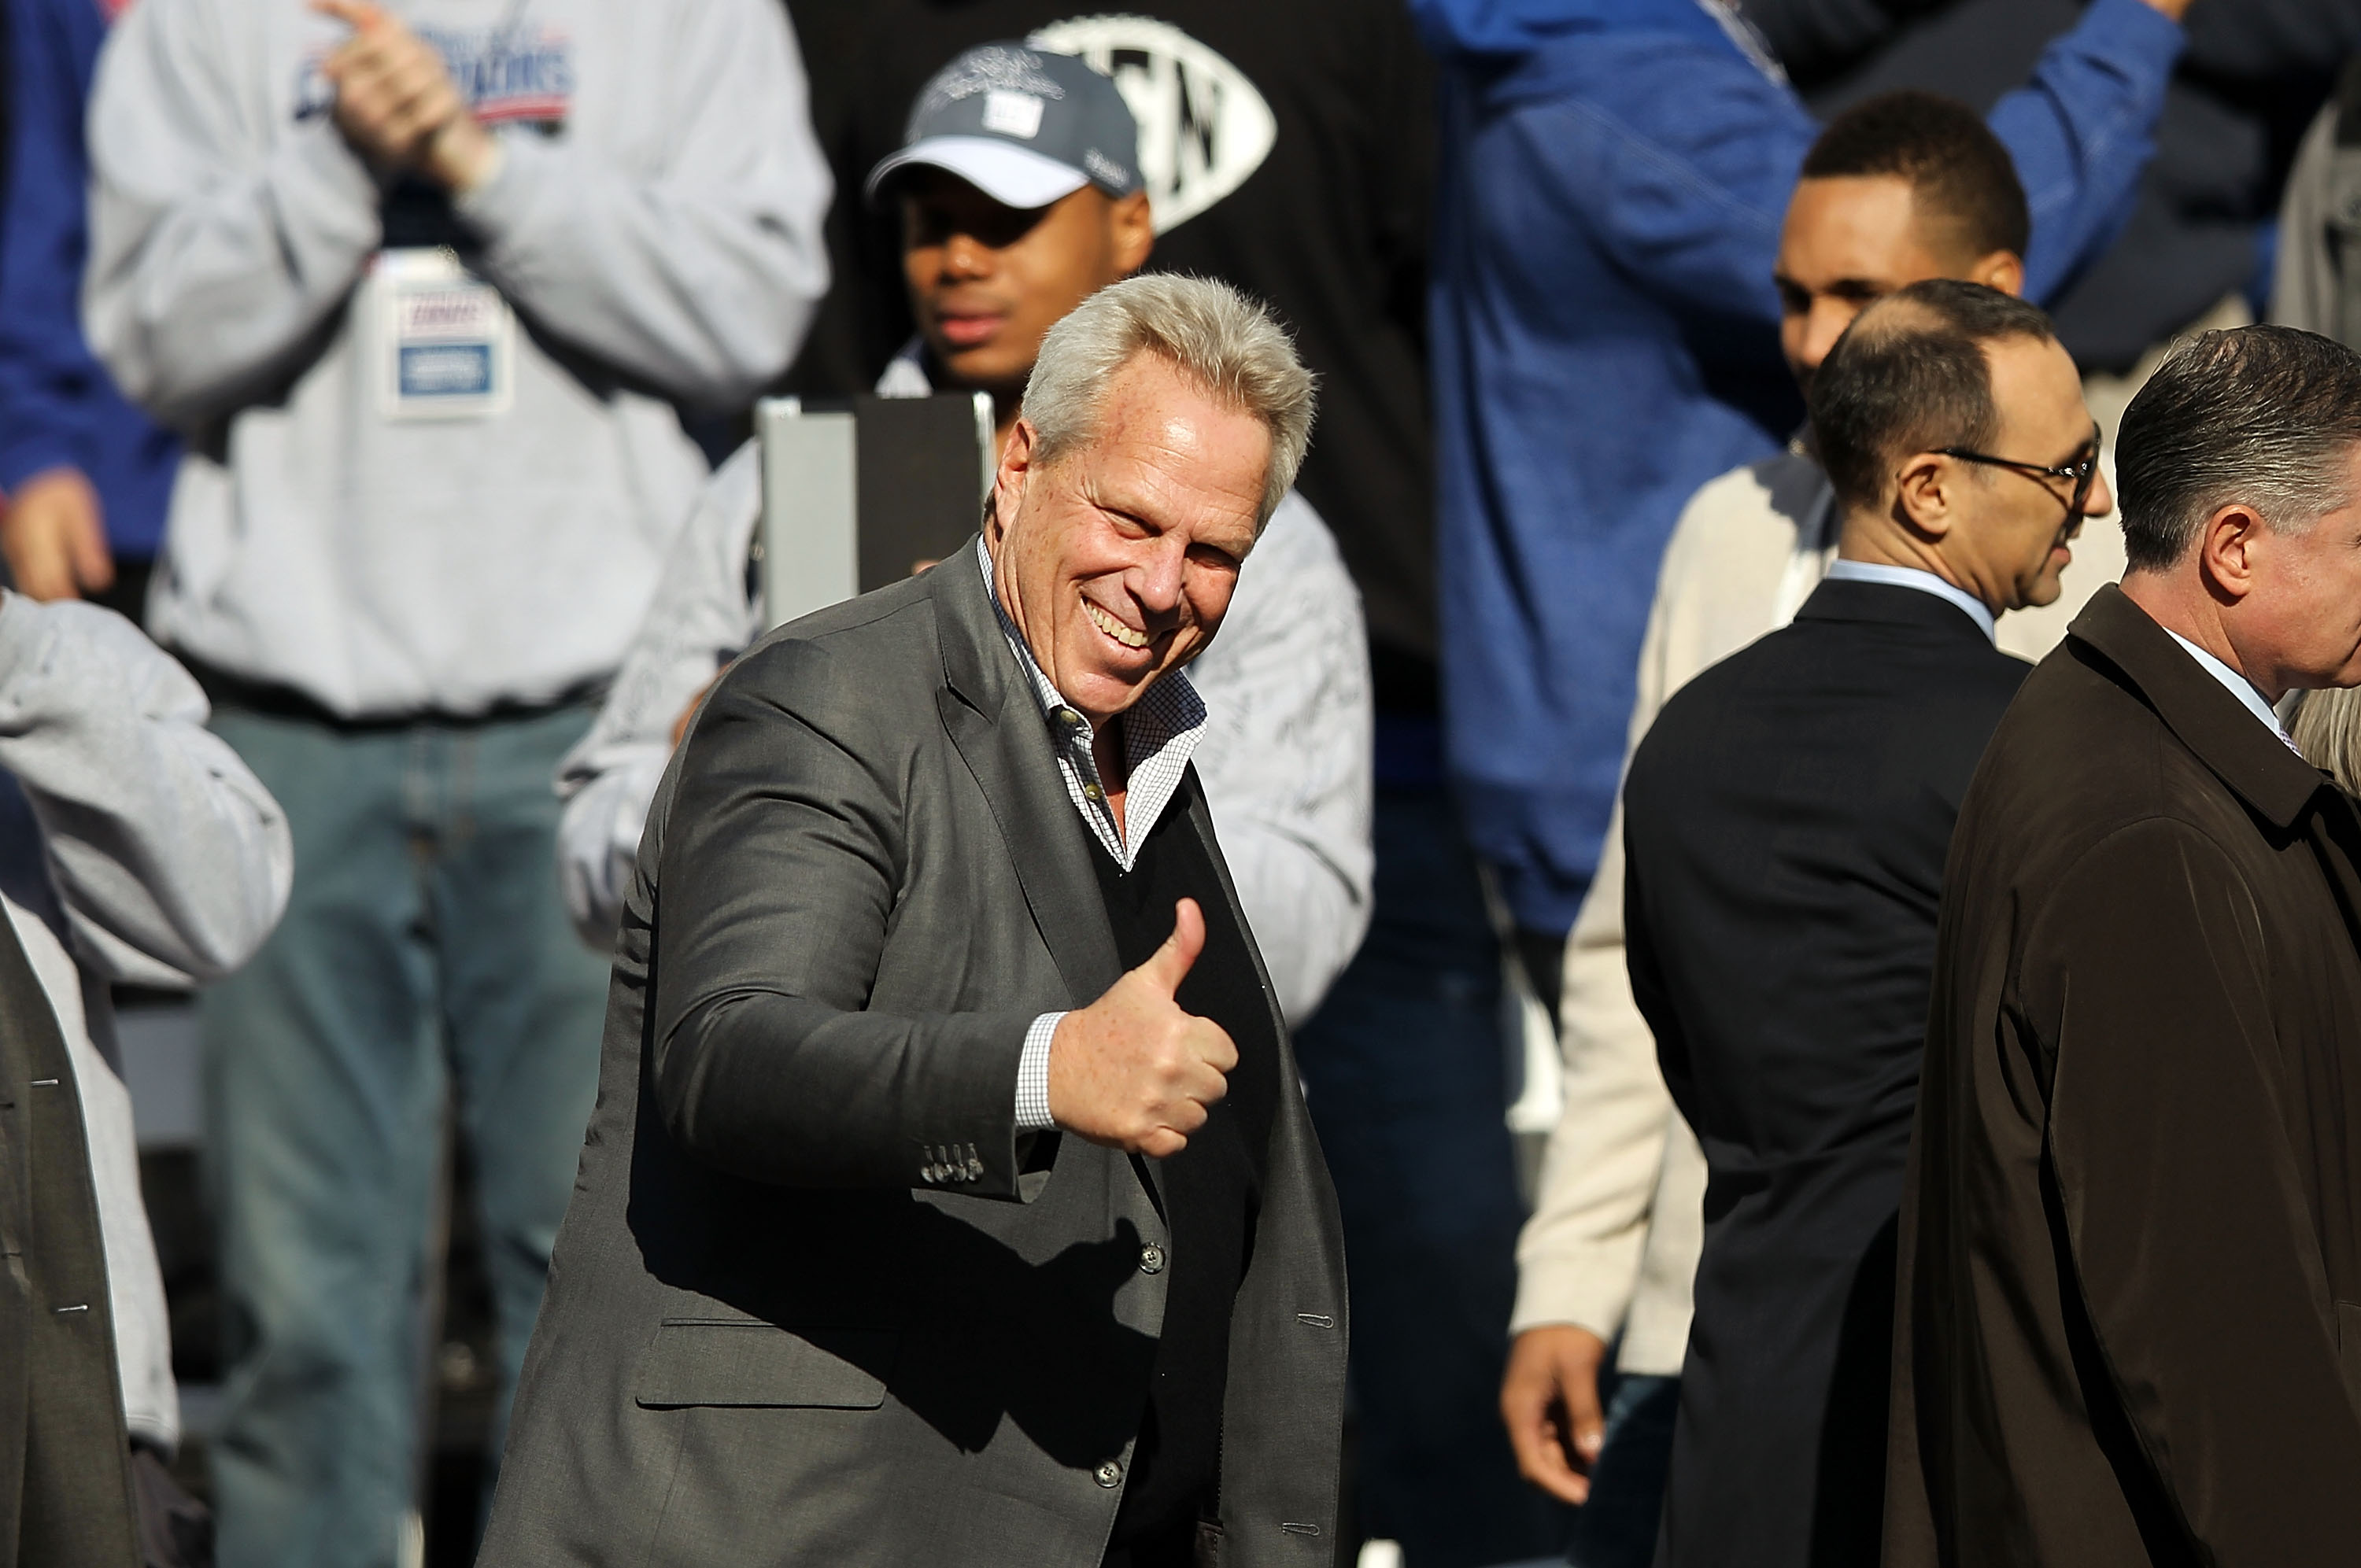 New York Giants co-owner Steve Tisch celebrates their Super Bowl win